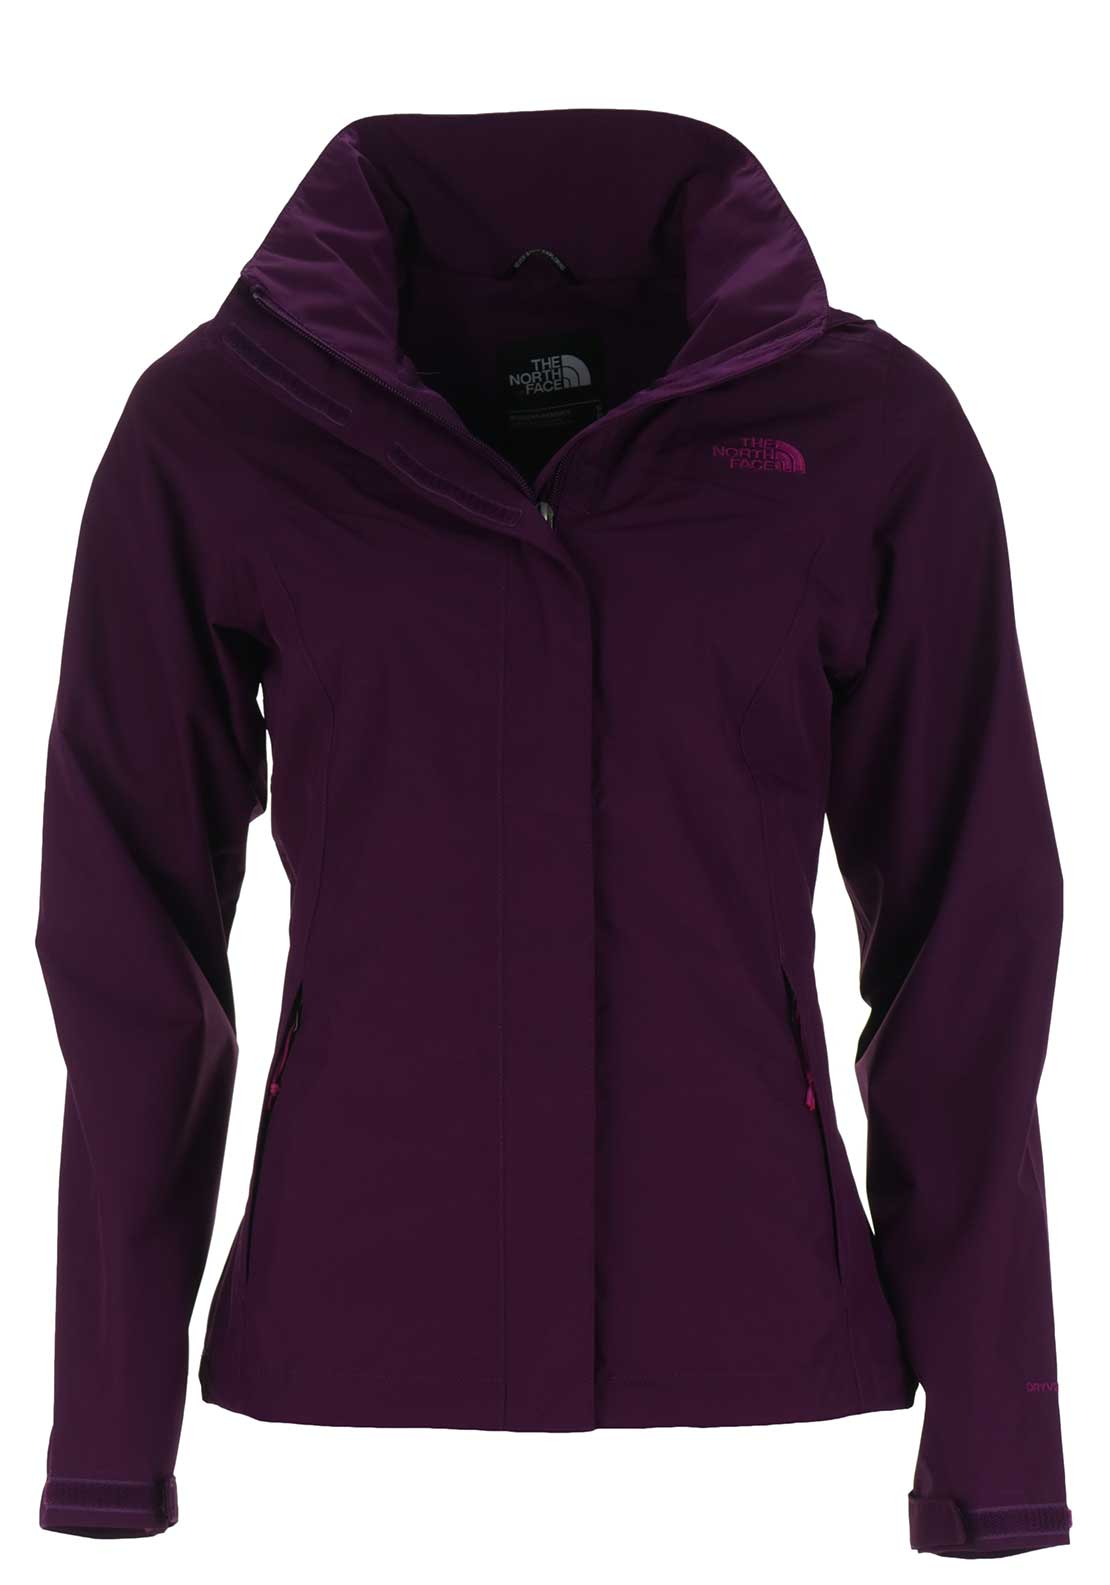 The North Face Womens Sangro Jacket, Paloma Purple